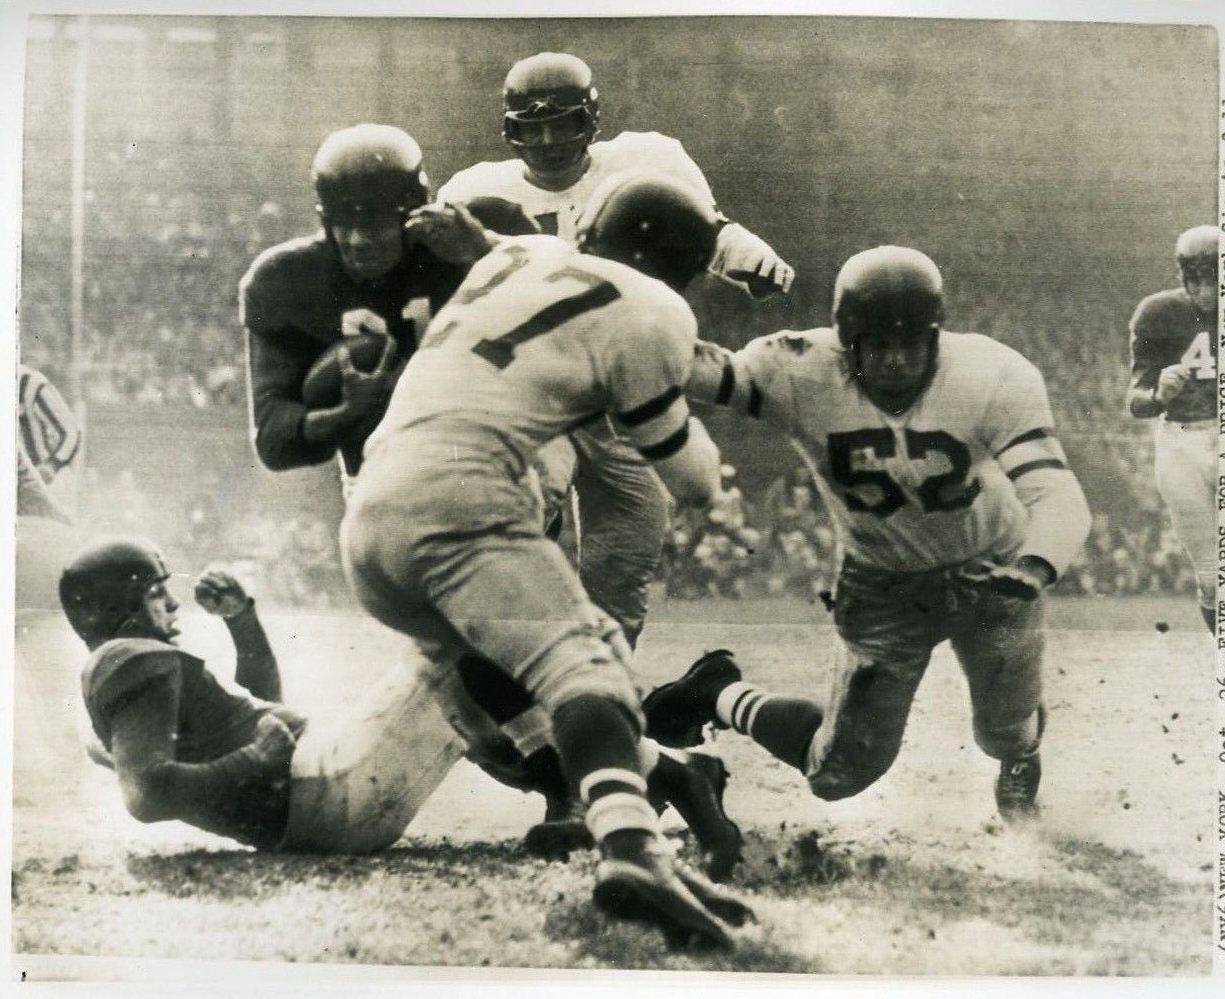 Eddie Price, New York Giants (October 26, 1952)